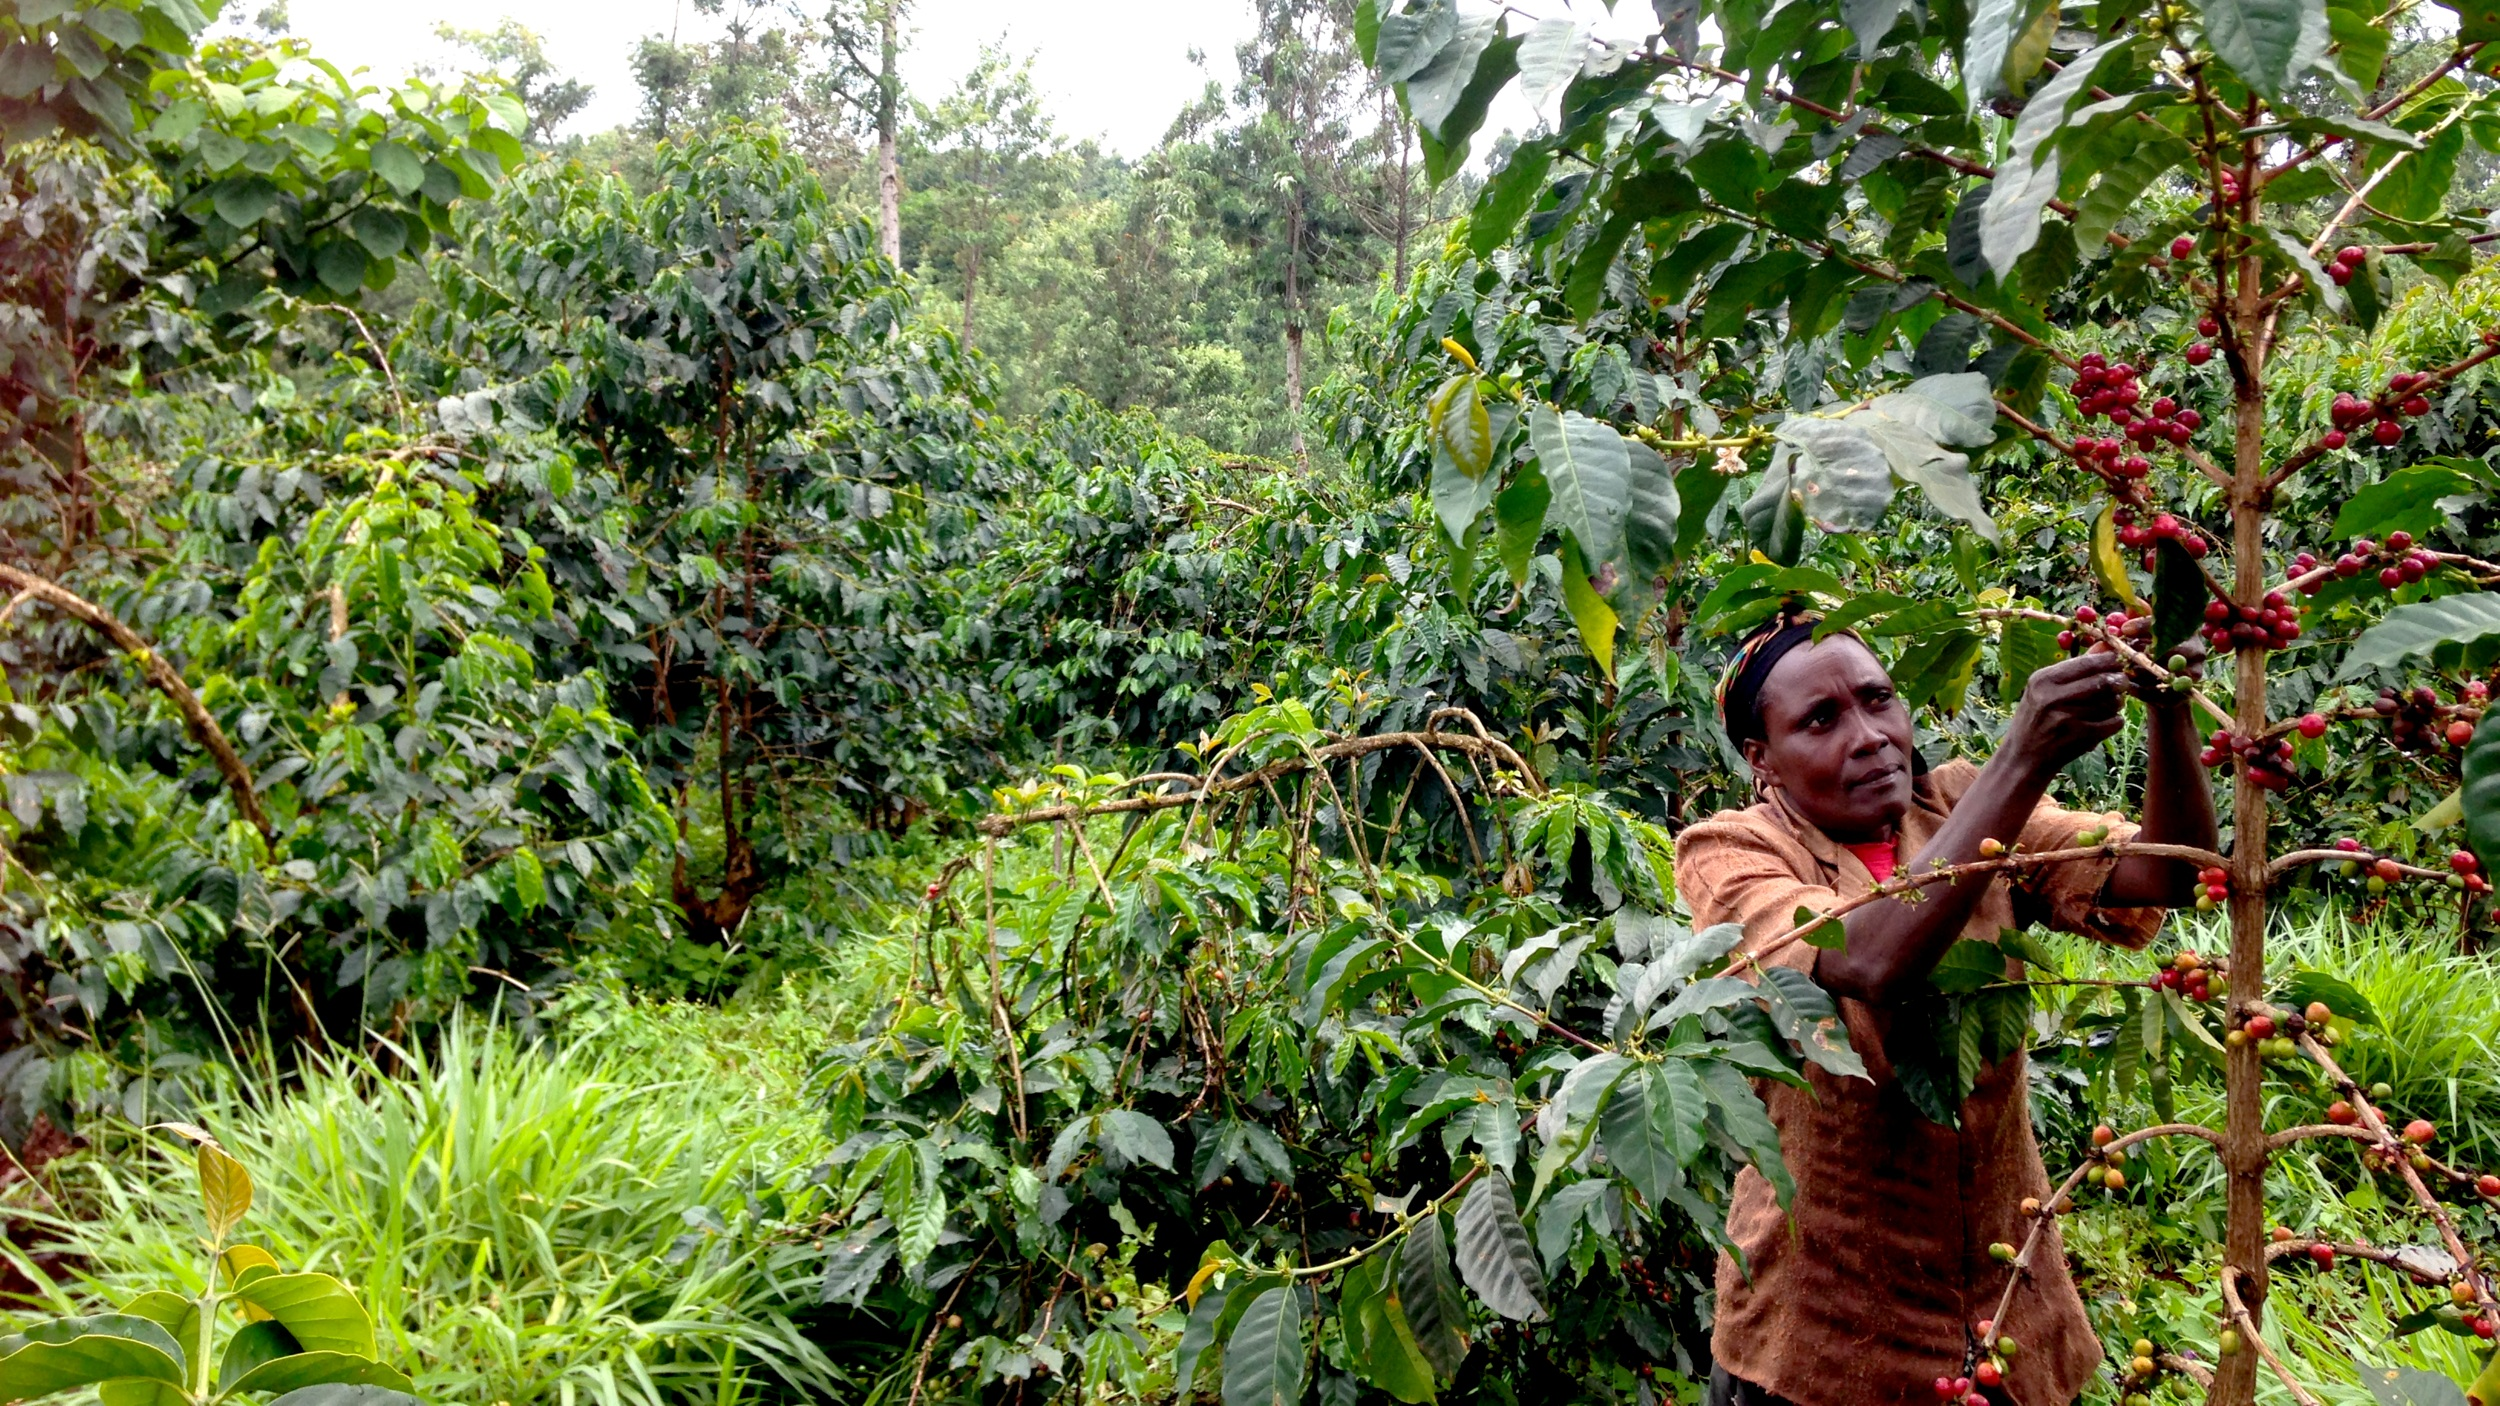 Harvesting Kenya coffee cherry